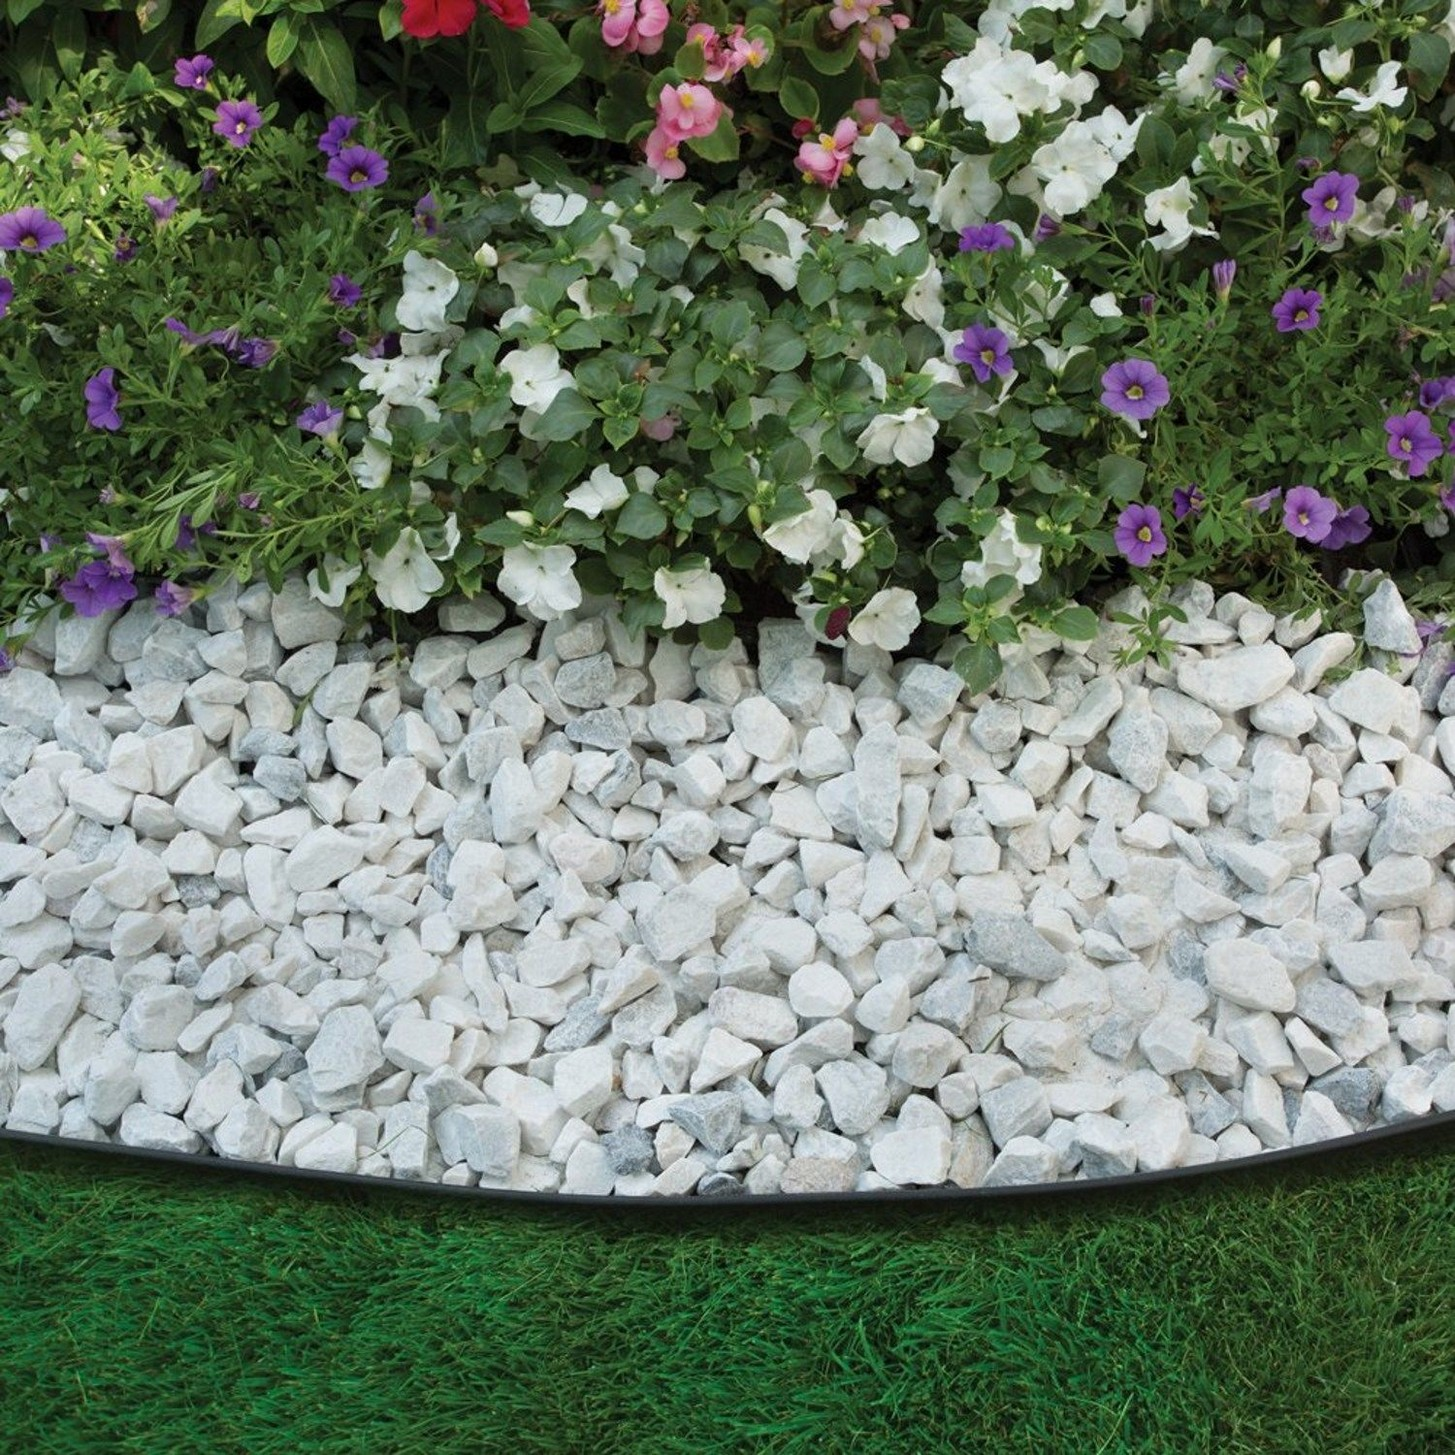 Mulch Bed Ideas | Stone Edgers | Landscape Edging Ideas